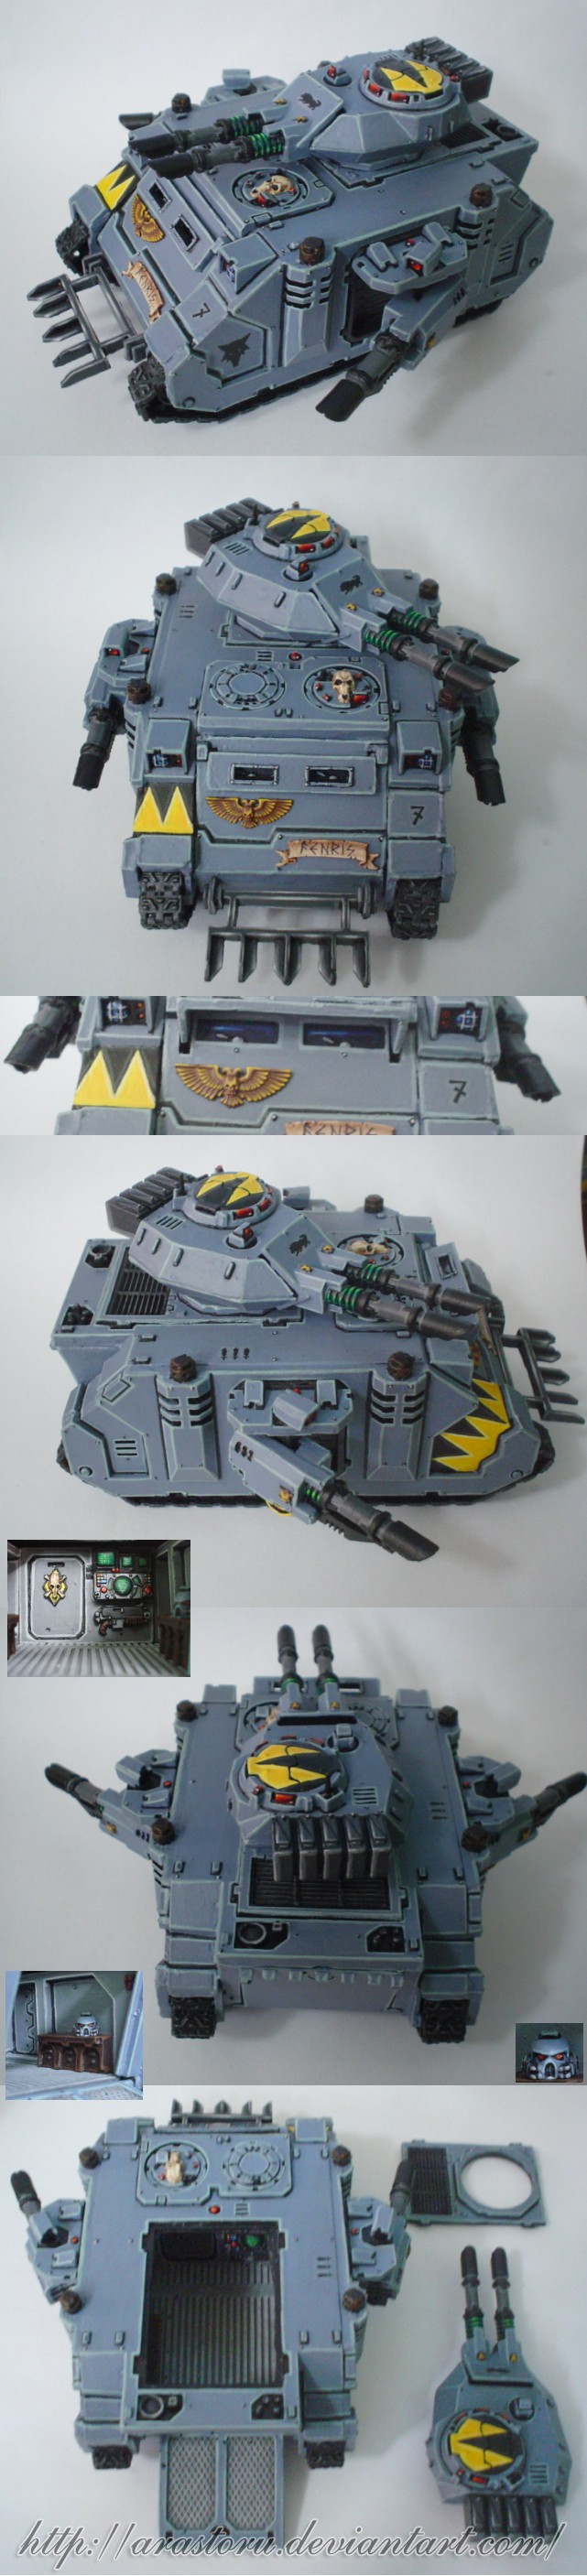 Space Wolves Predator Tank by Arastoru.deviantart.com on @deviantART